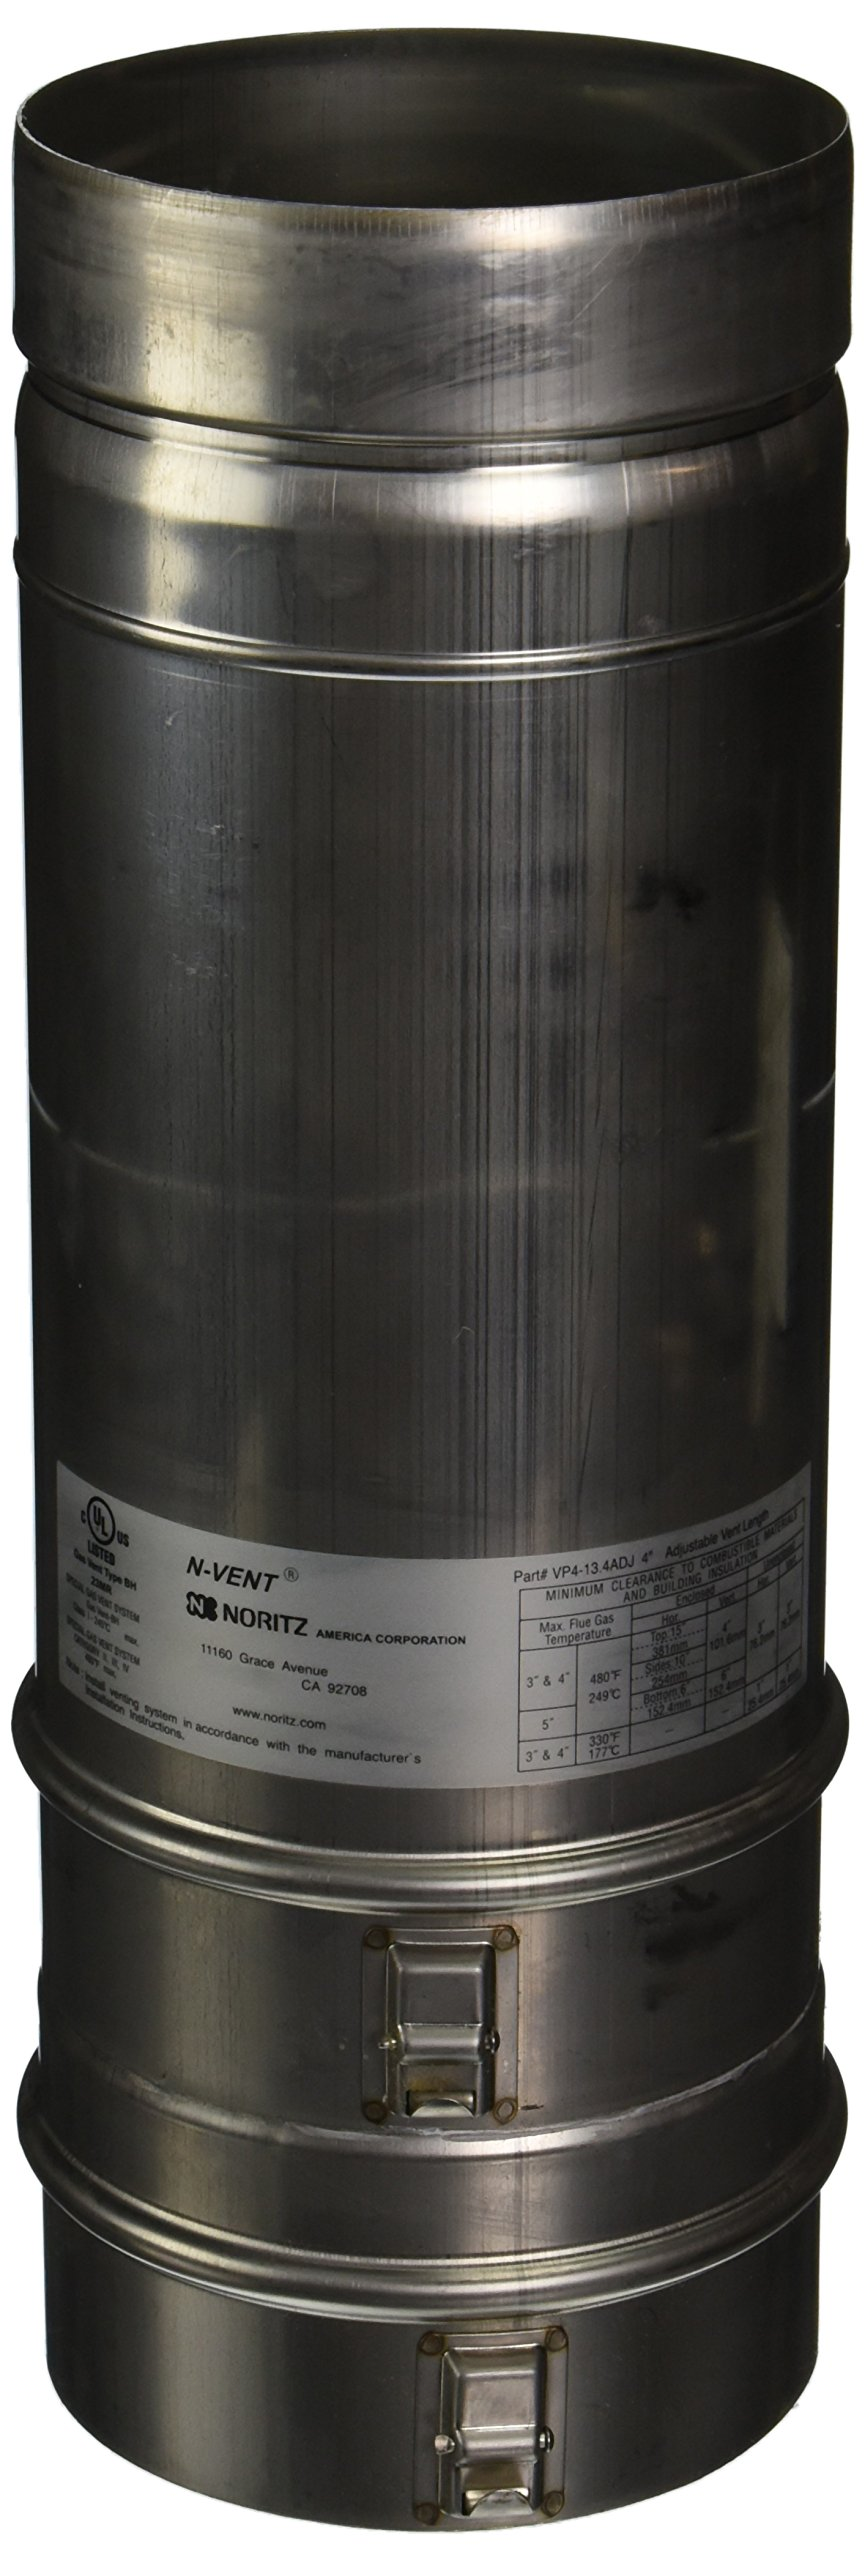 Noritz VP4-13.4ADJUST 4-Inch Diameter by 13.4-Inch Adjustable Straight Stainless Steel Single Wall Venting by Noritz (Image #1)